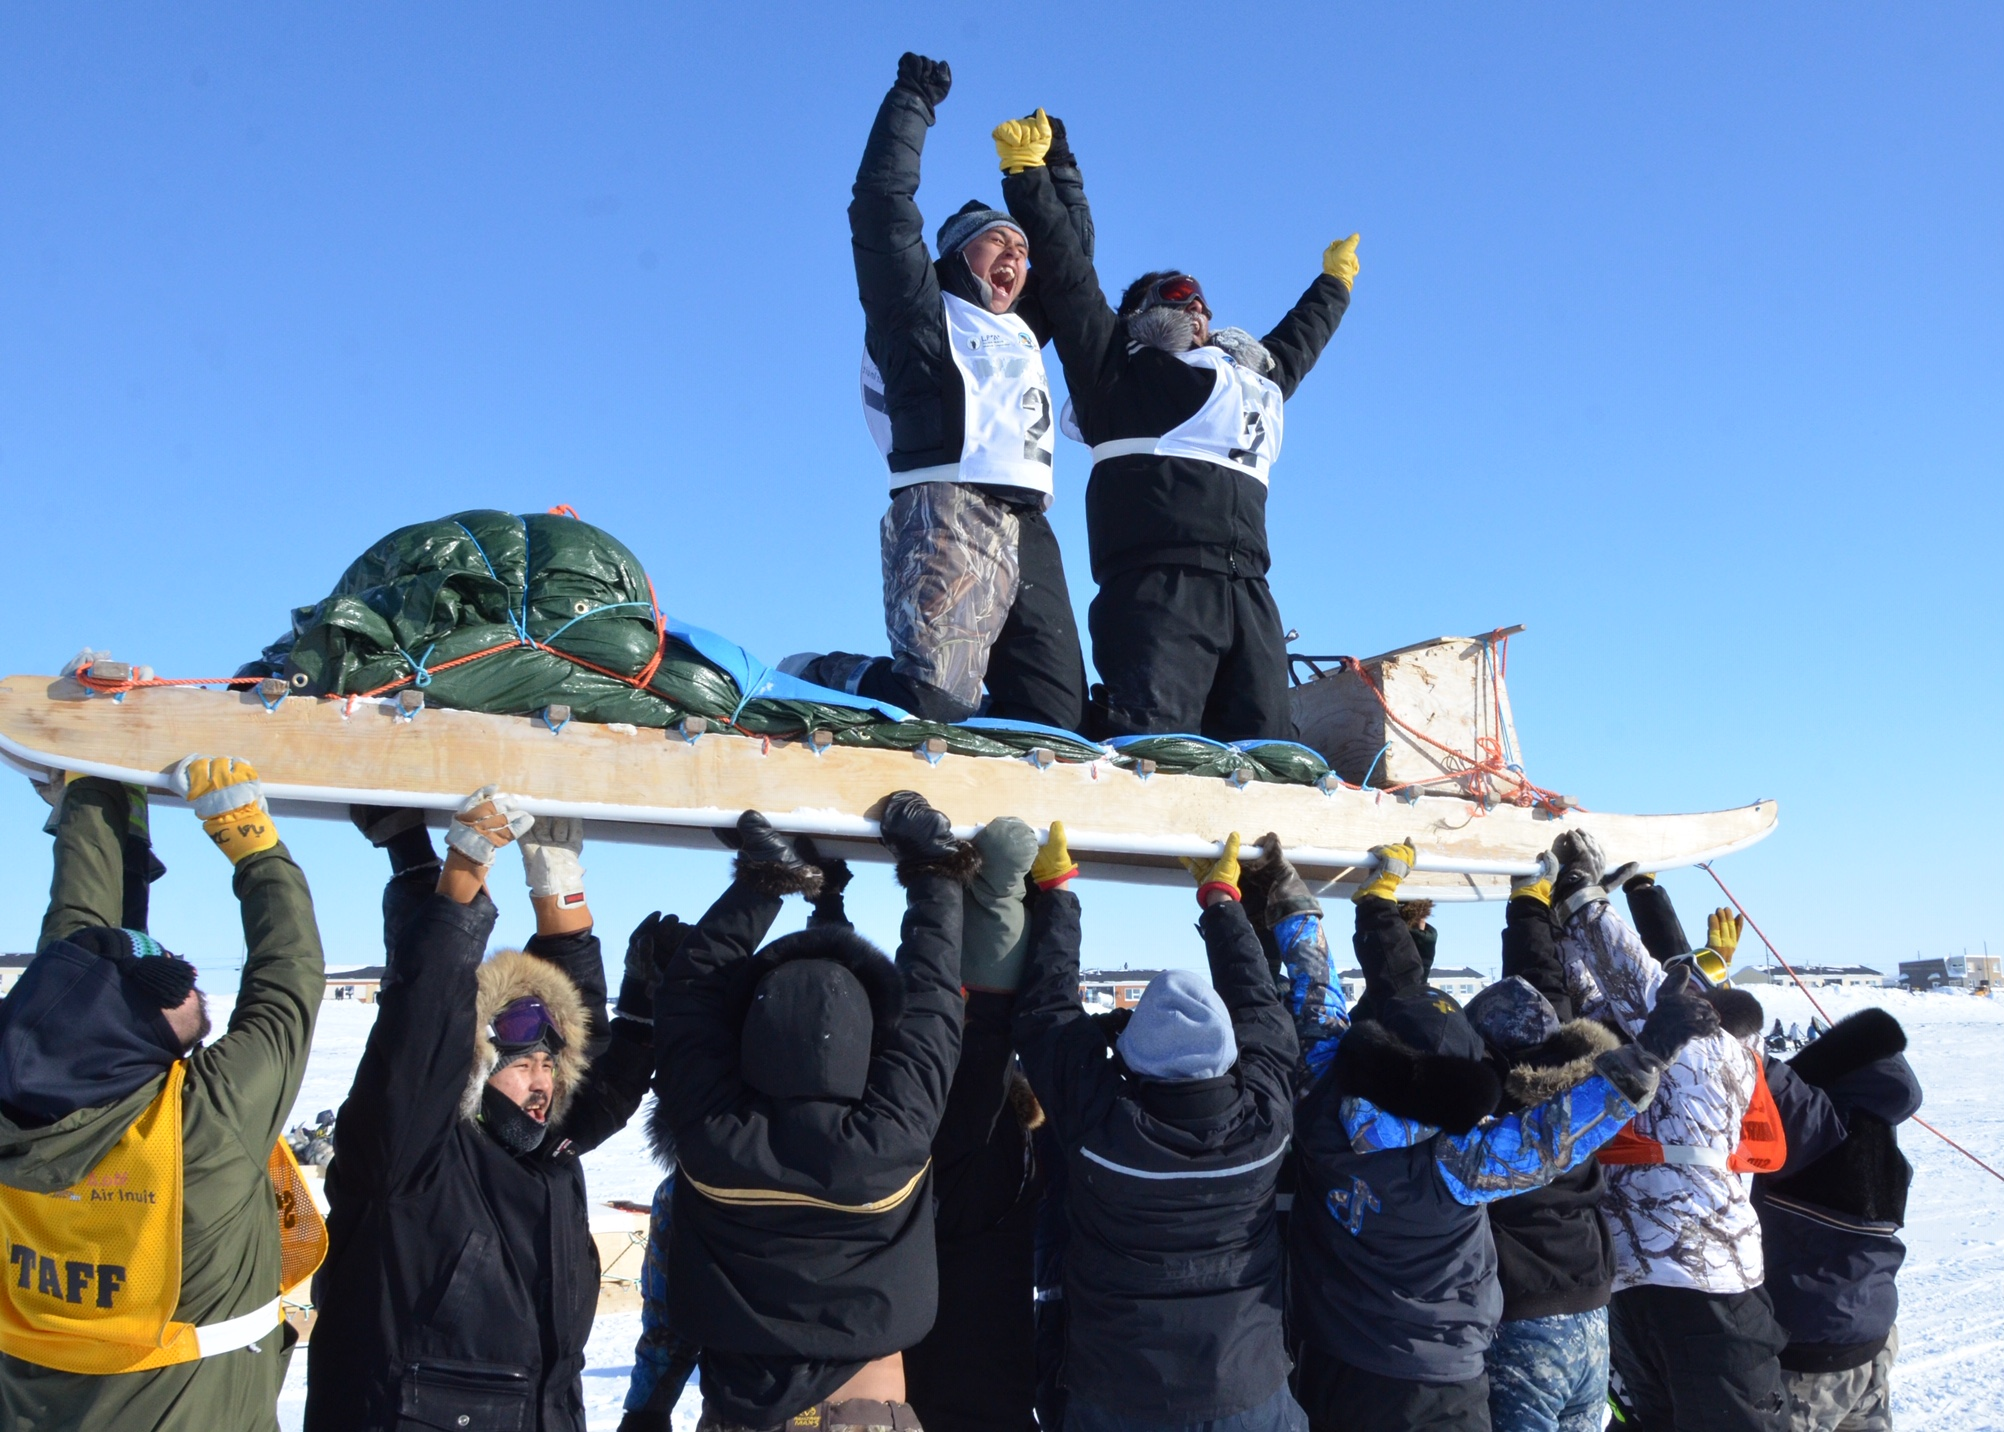 Puvirnituq's Aisa Surusilak, right, and Paulusi Amarualik are hoisted into the air after winning this year's Ivakkak dog sled race on Wednesday. The team completed this year's route, from Salluit to Ivujivik, Akulivik and Puvirnituq, in 39 hours and 30 minutes, after enduring blizzards, soft snow conditions and cold winds. (Photo by Isabelle Dubois)